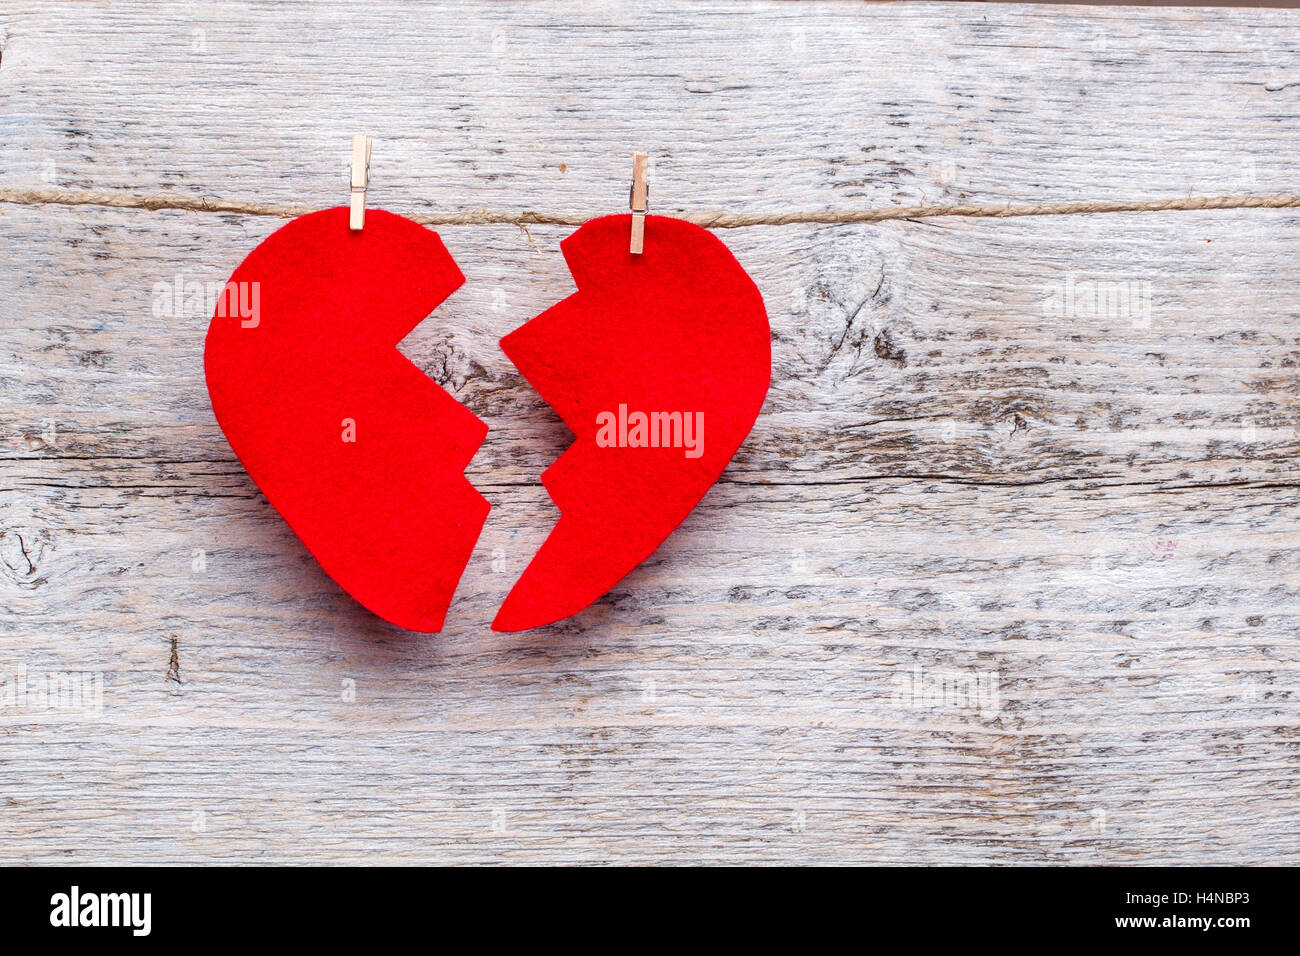 Broken heart hanging on rope - Stock Image